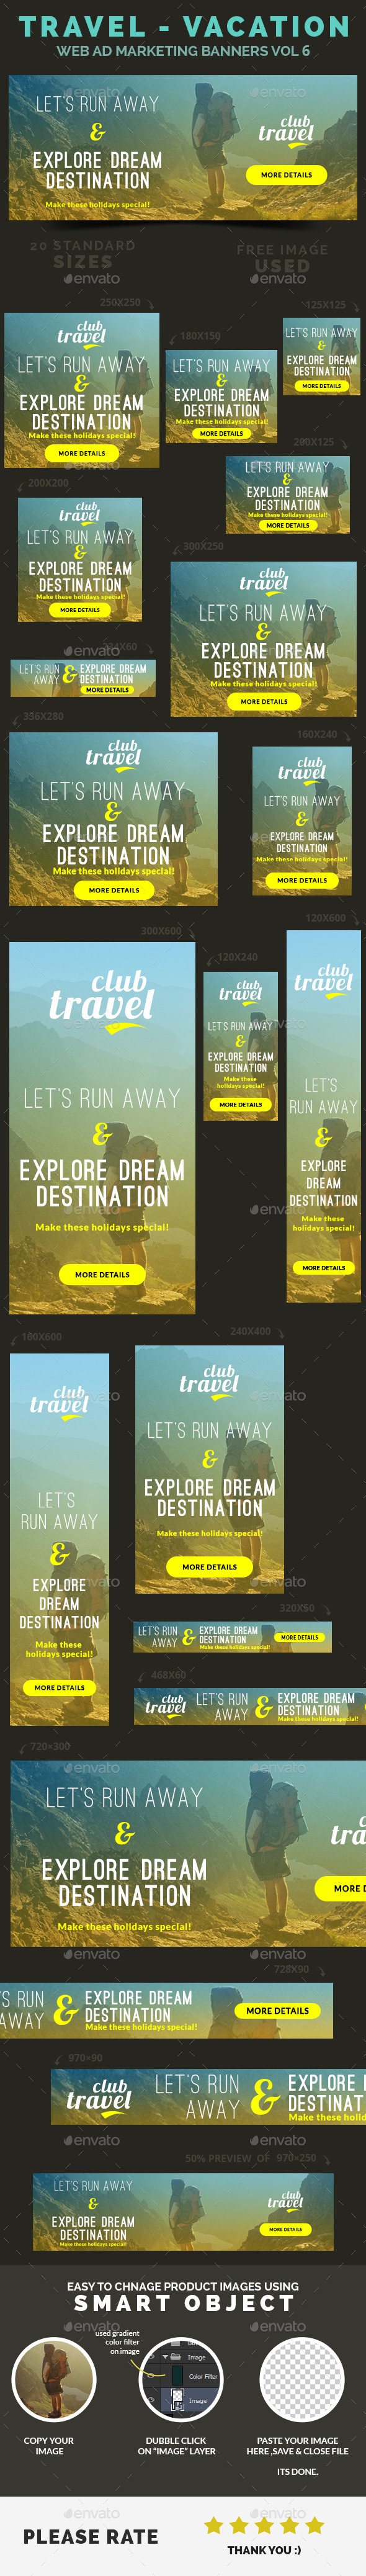 GraphicRiver Travel Vacation Web Ad Marketing Banners Vol 6 9305436